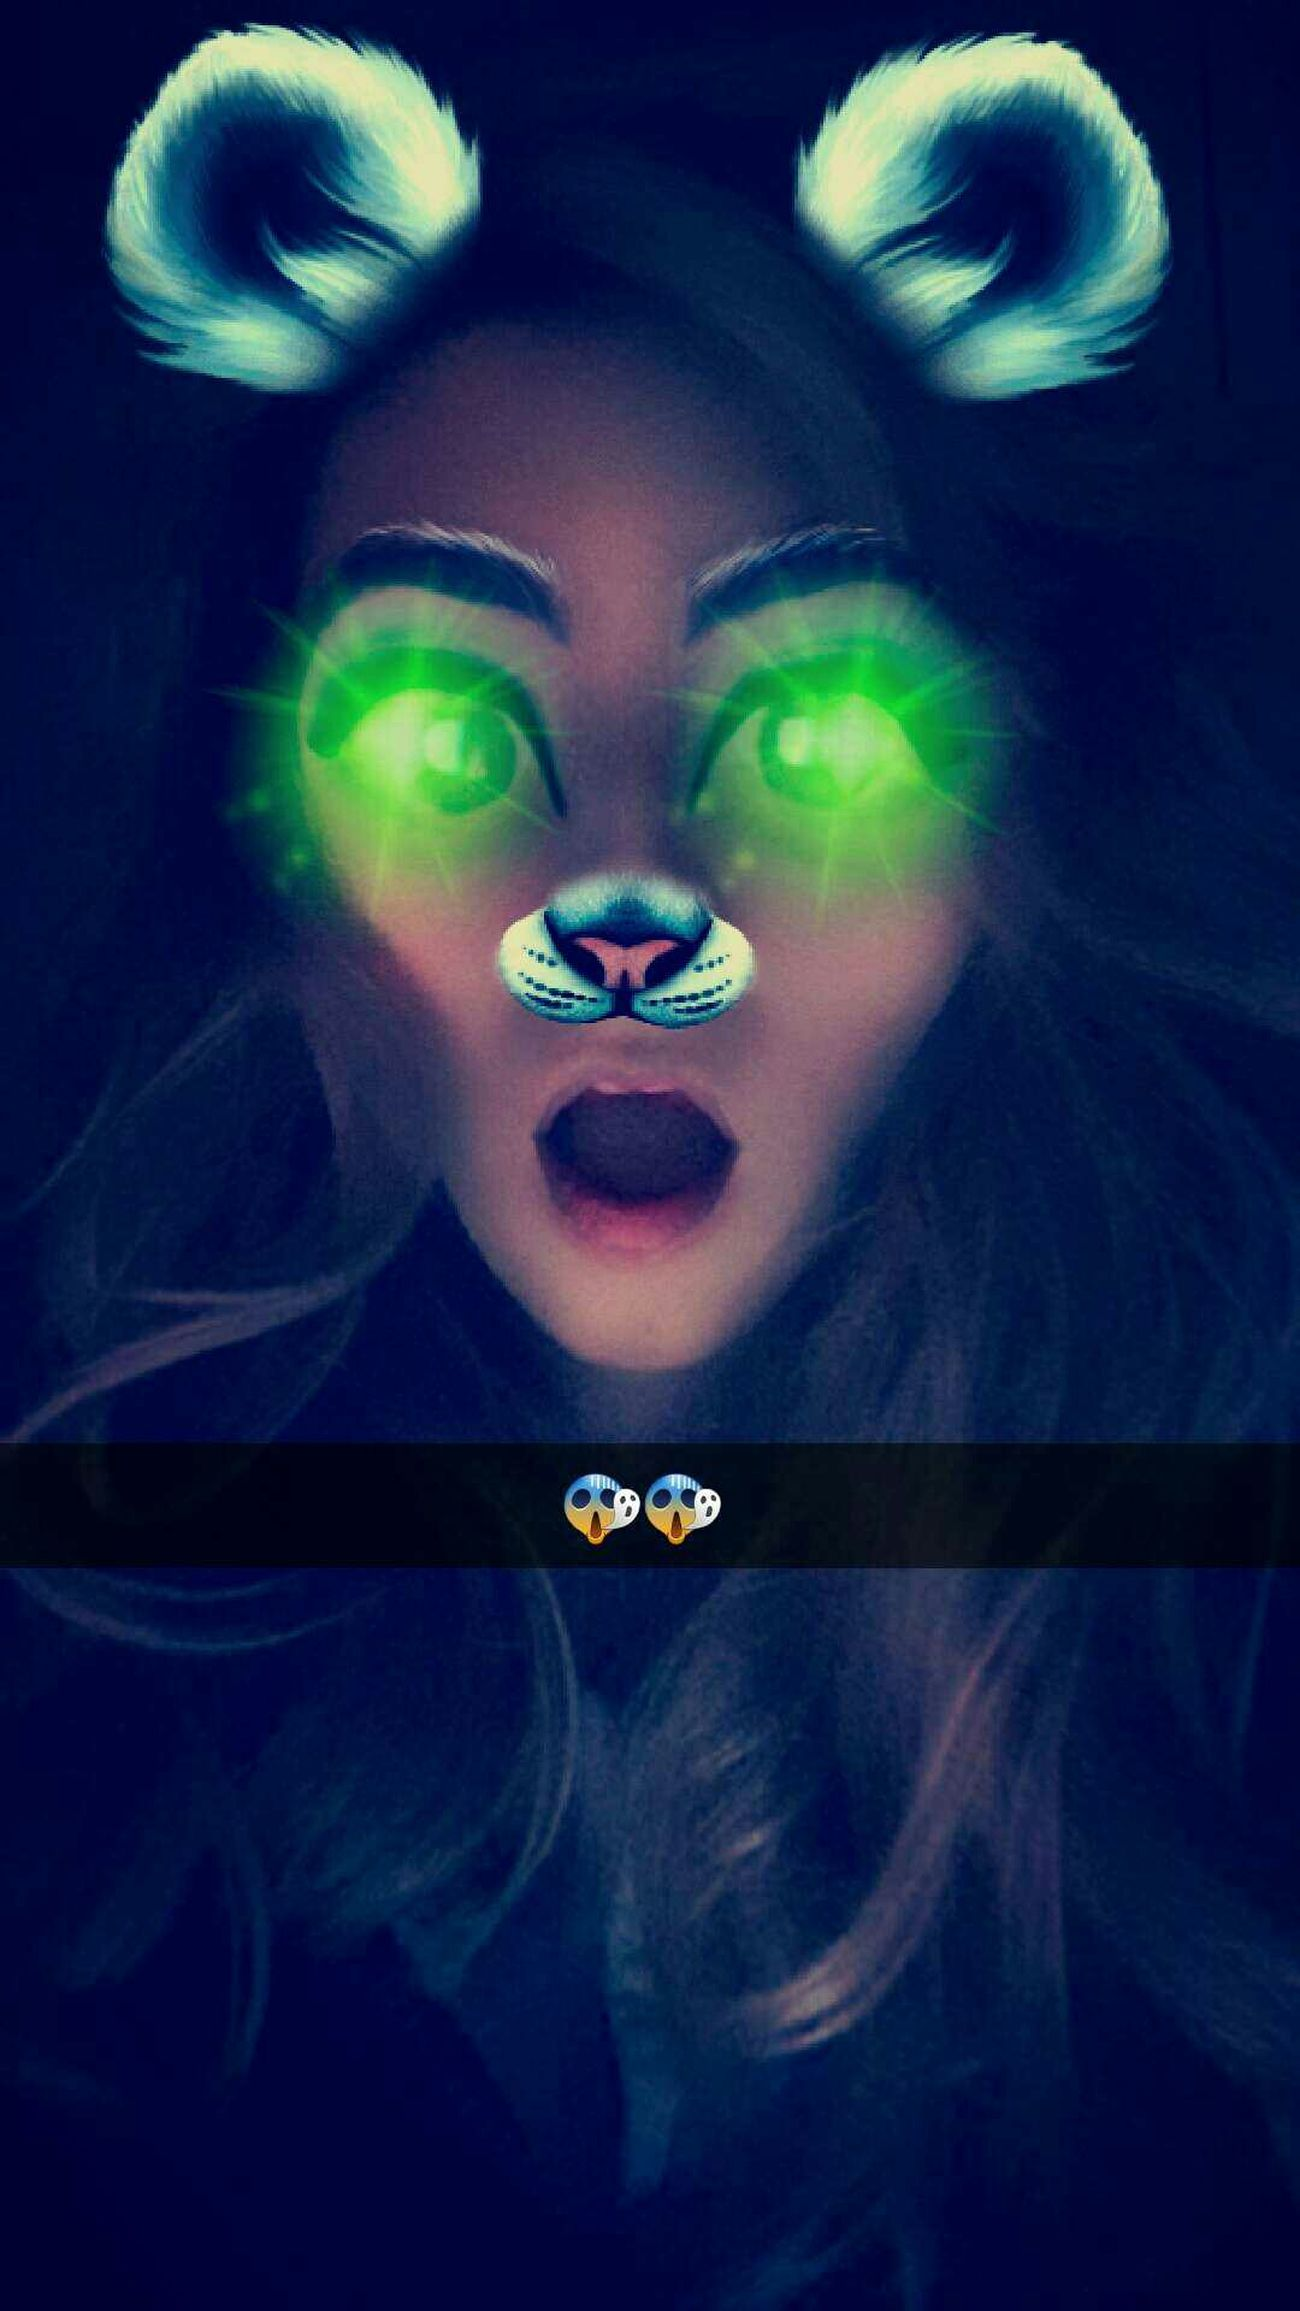 Nothing to do 😂 Open Mouth Fun Funny Effects Eyes Me Happy Awake Latenight